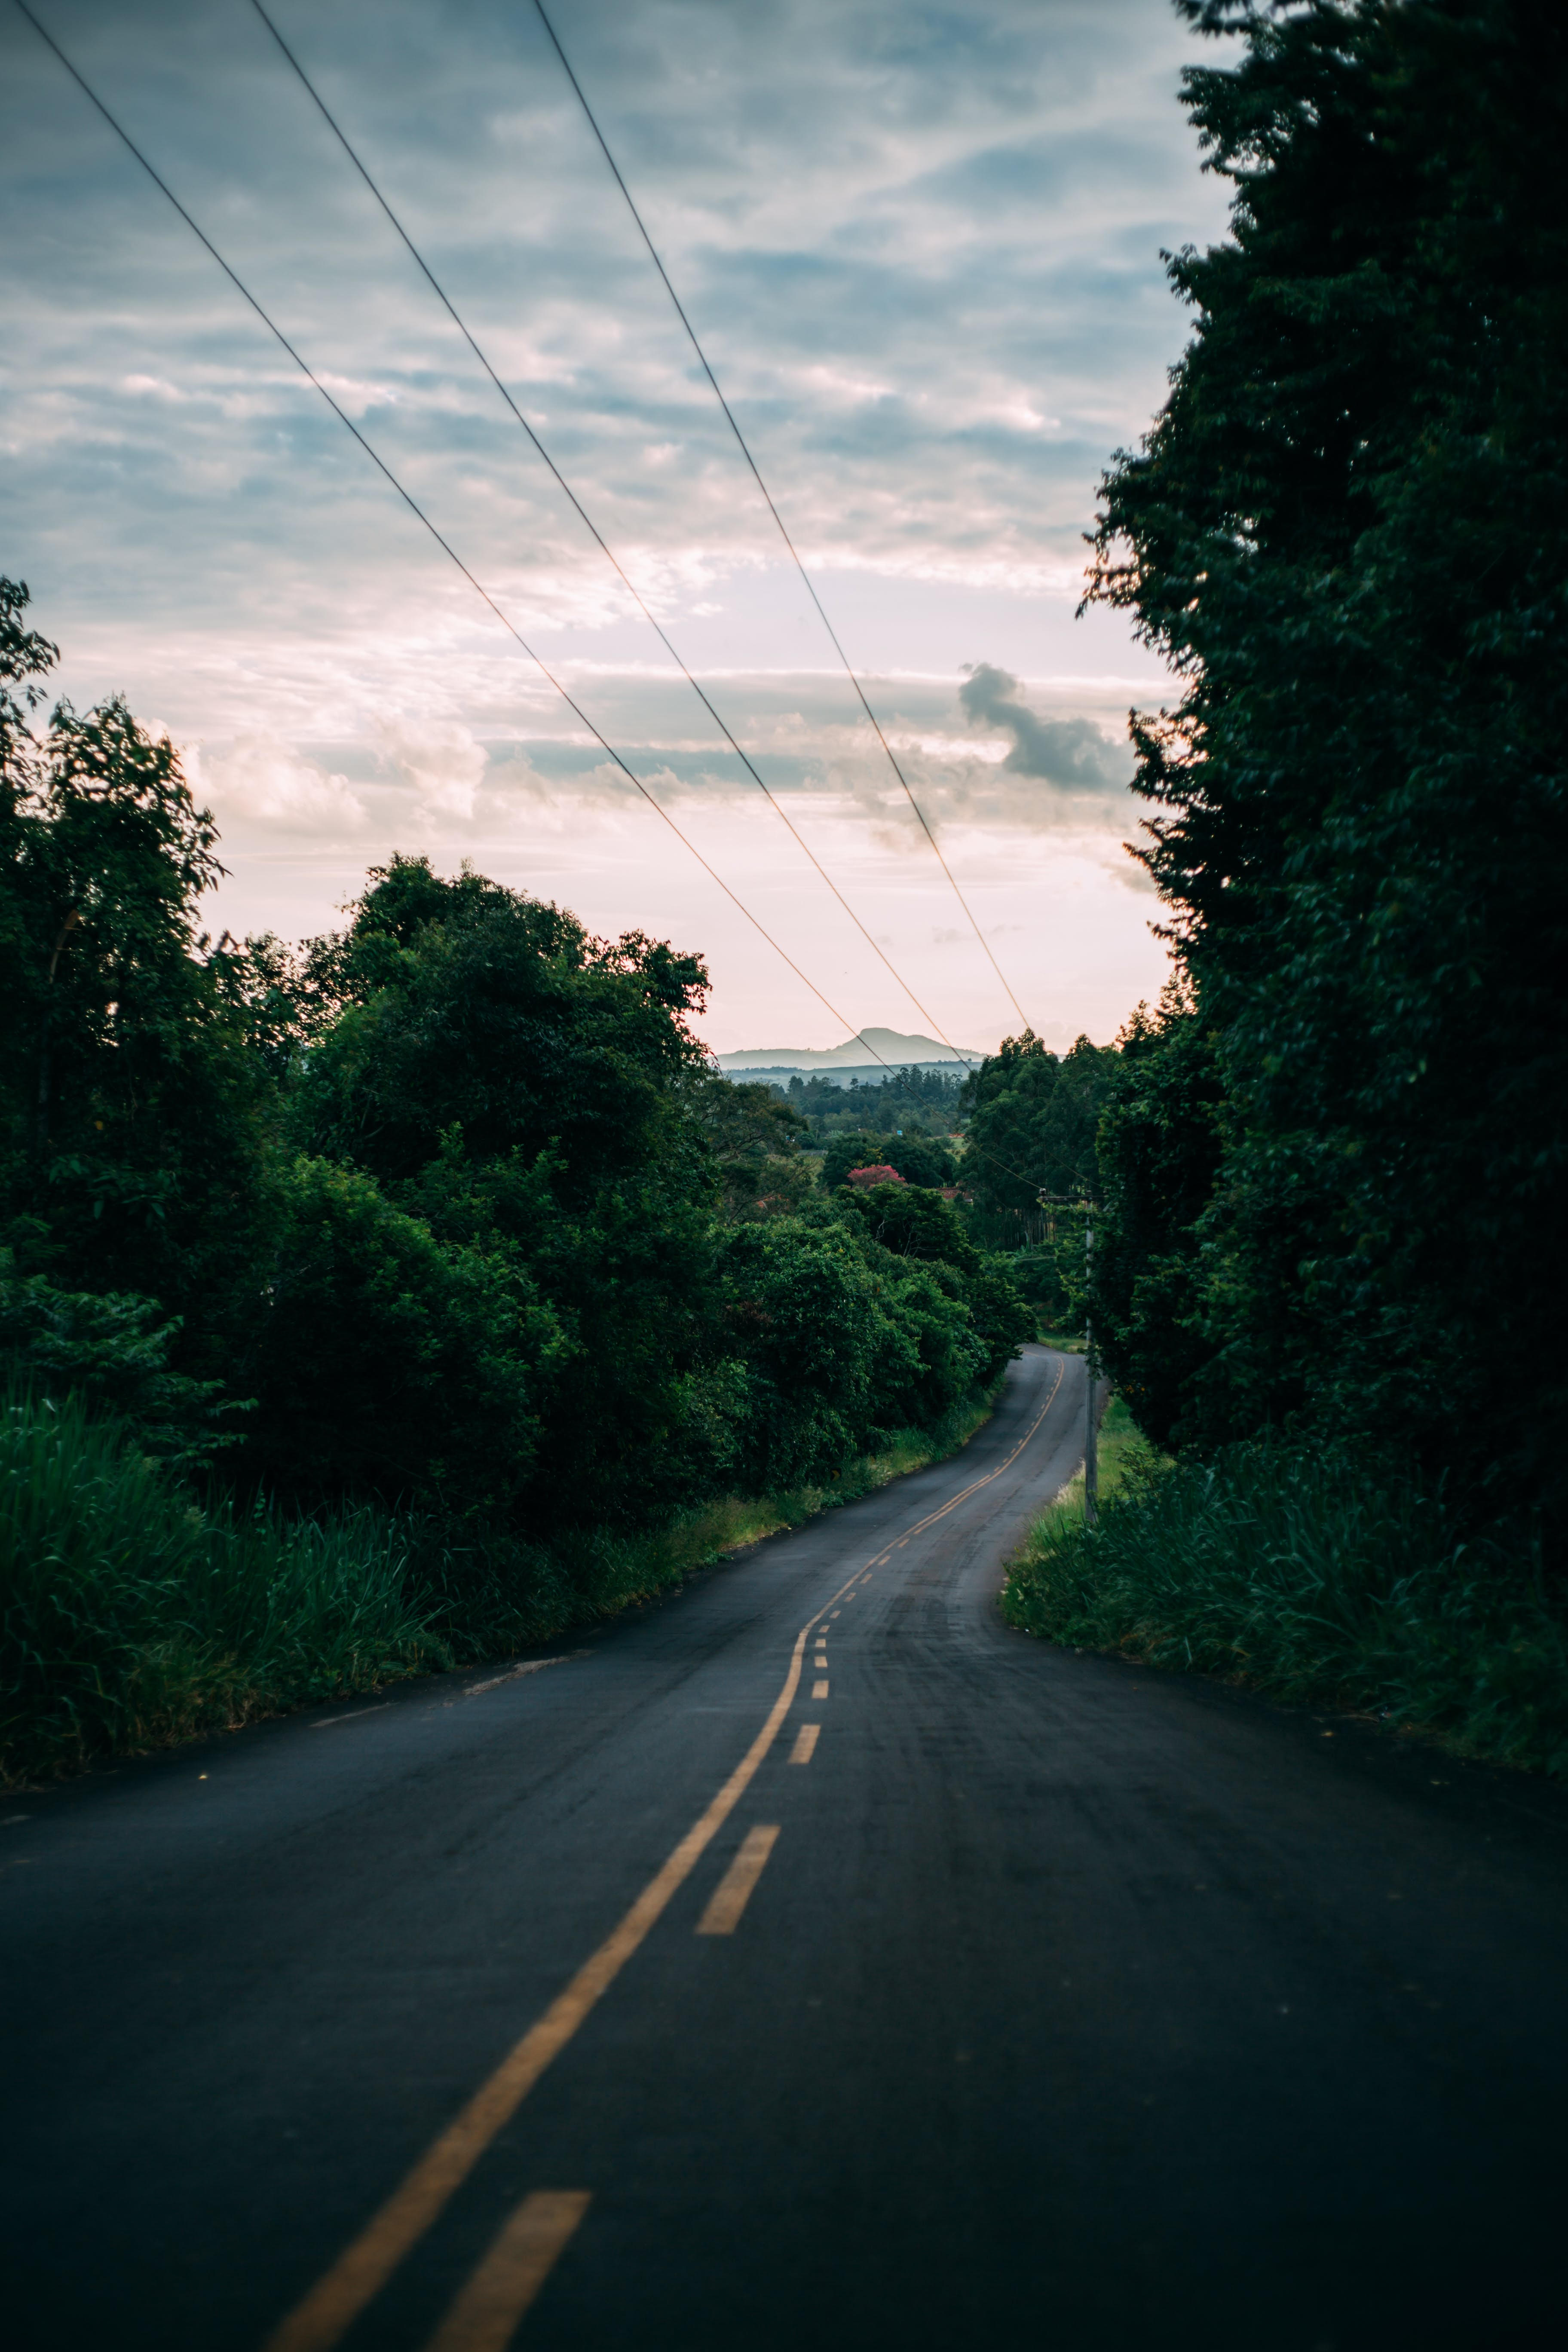 Free stock photo of road, forest, trees, power lines